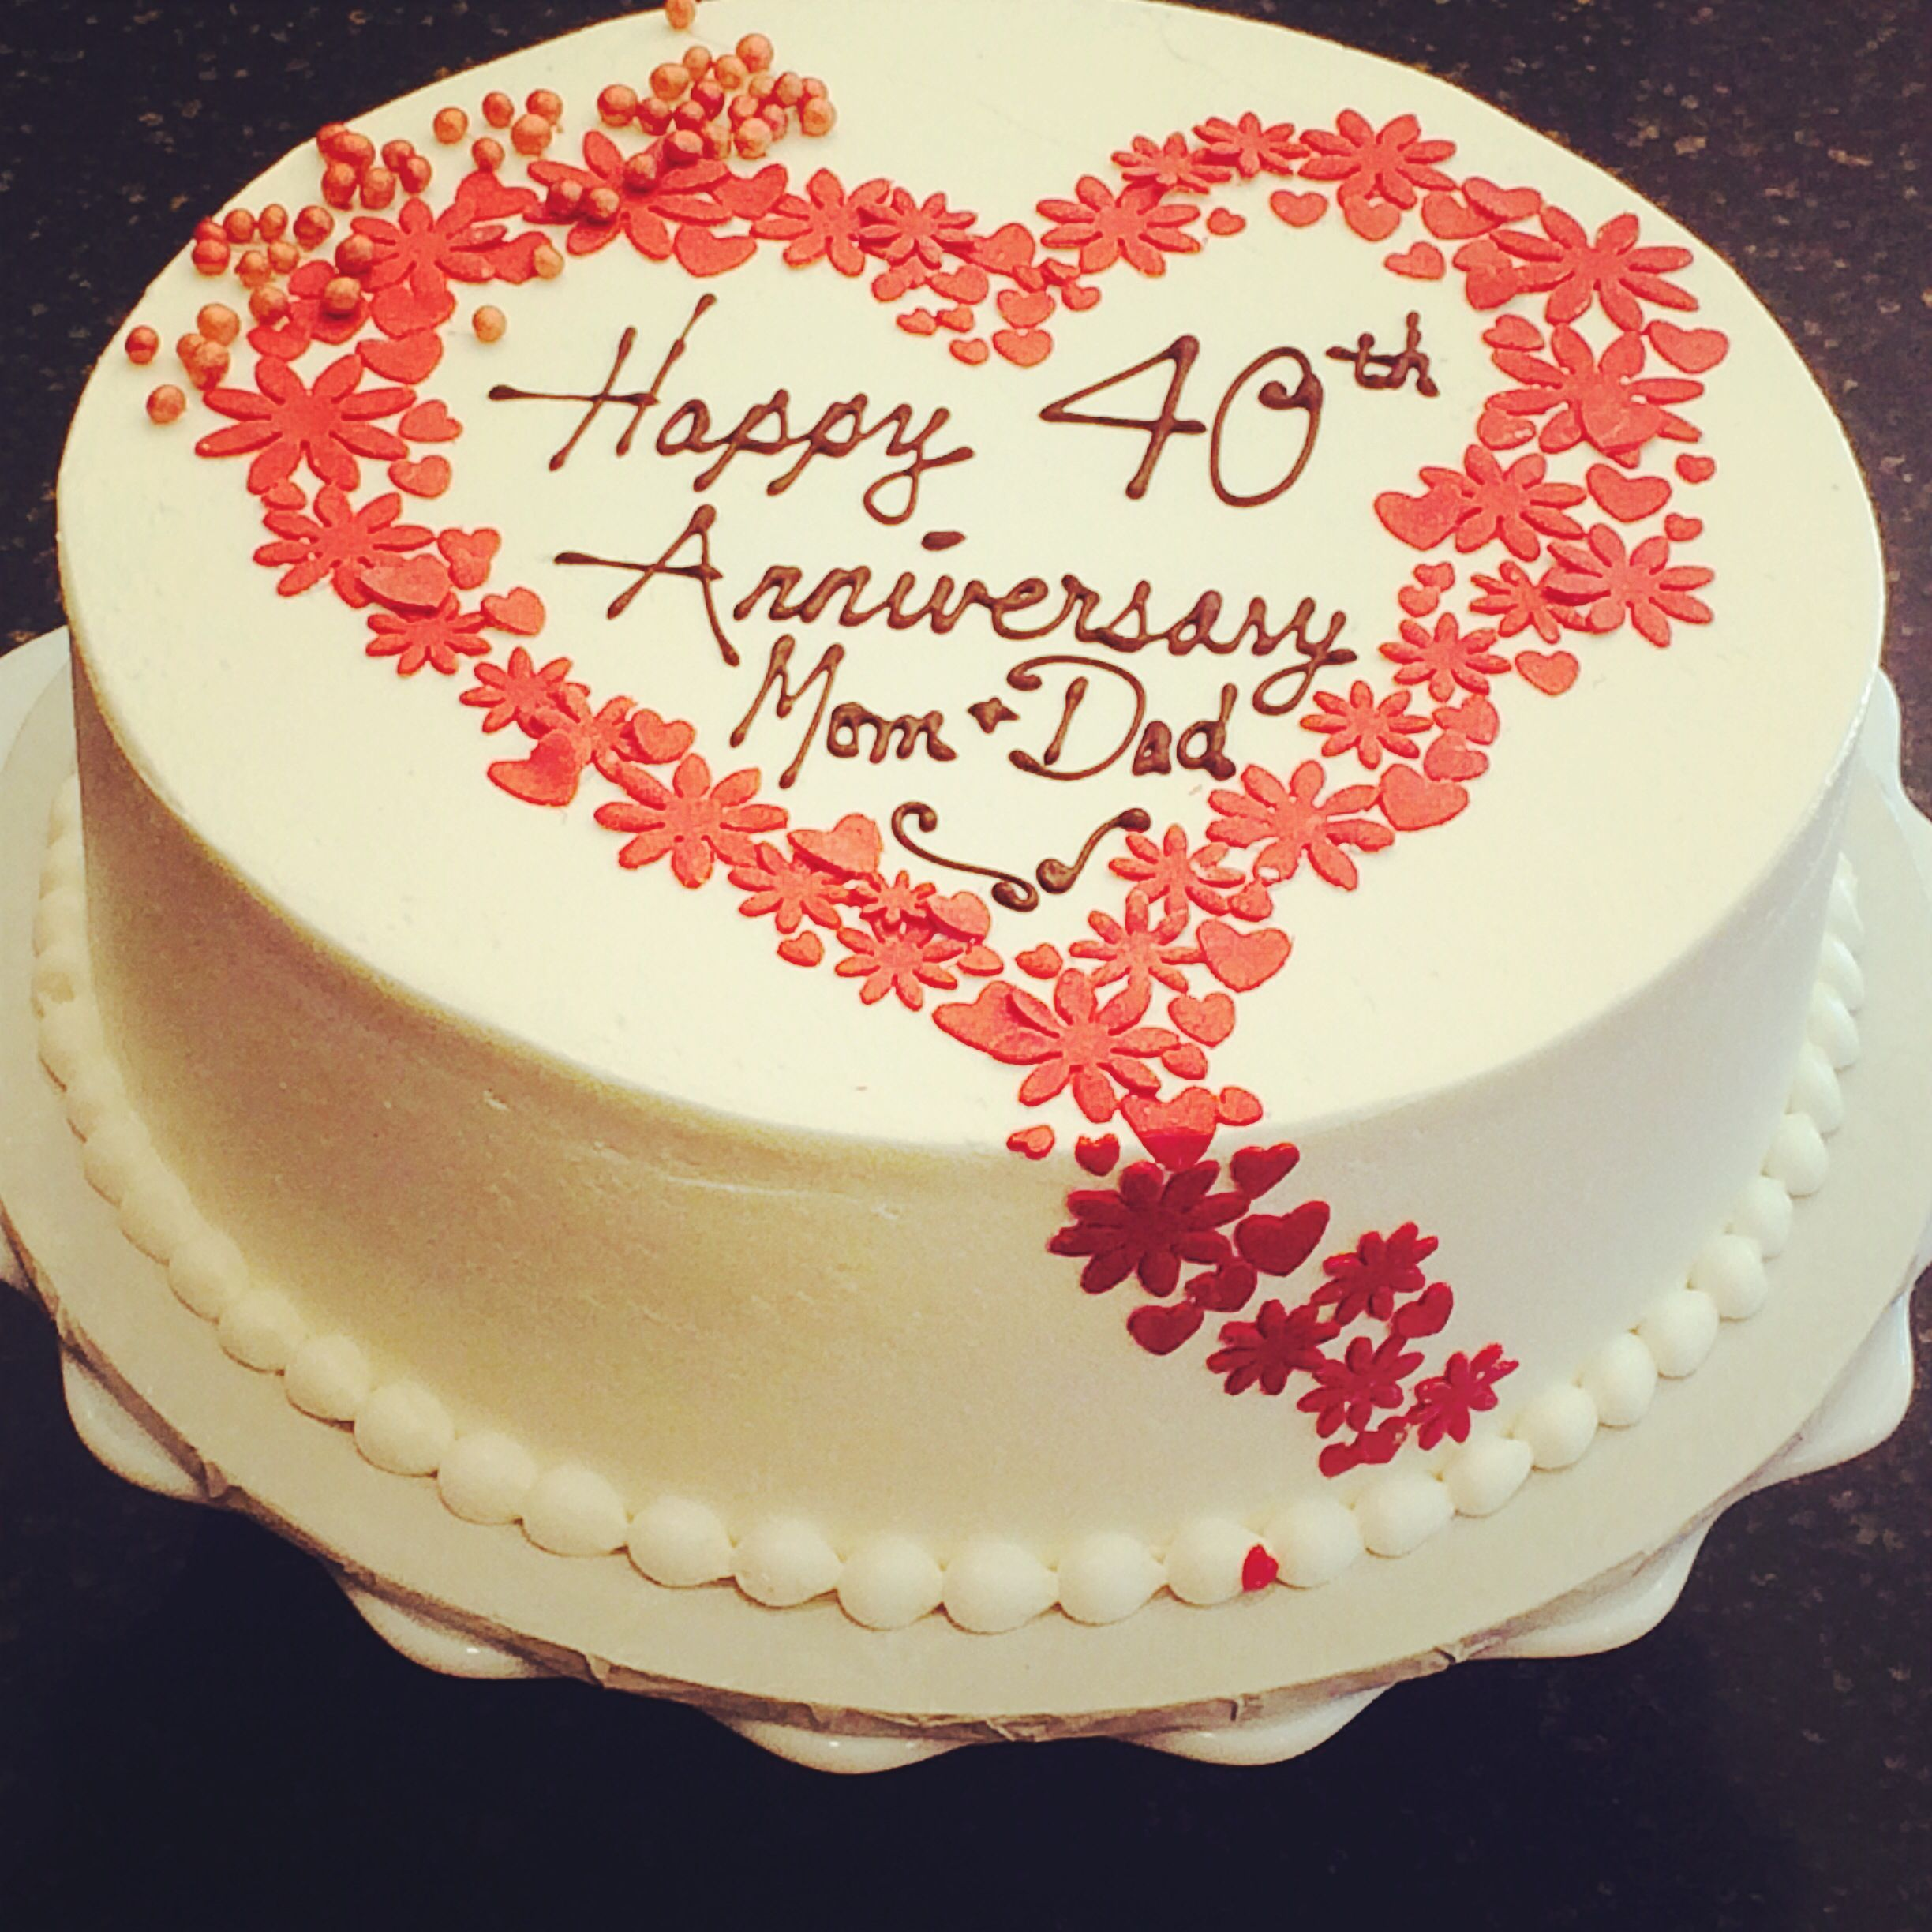 Cake Ideas For Wedding Anniversary: Red Velvet Ruby 40th Anniversary Cake. Newleafpastries.com